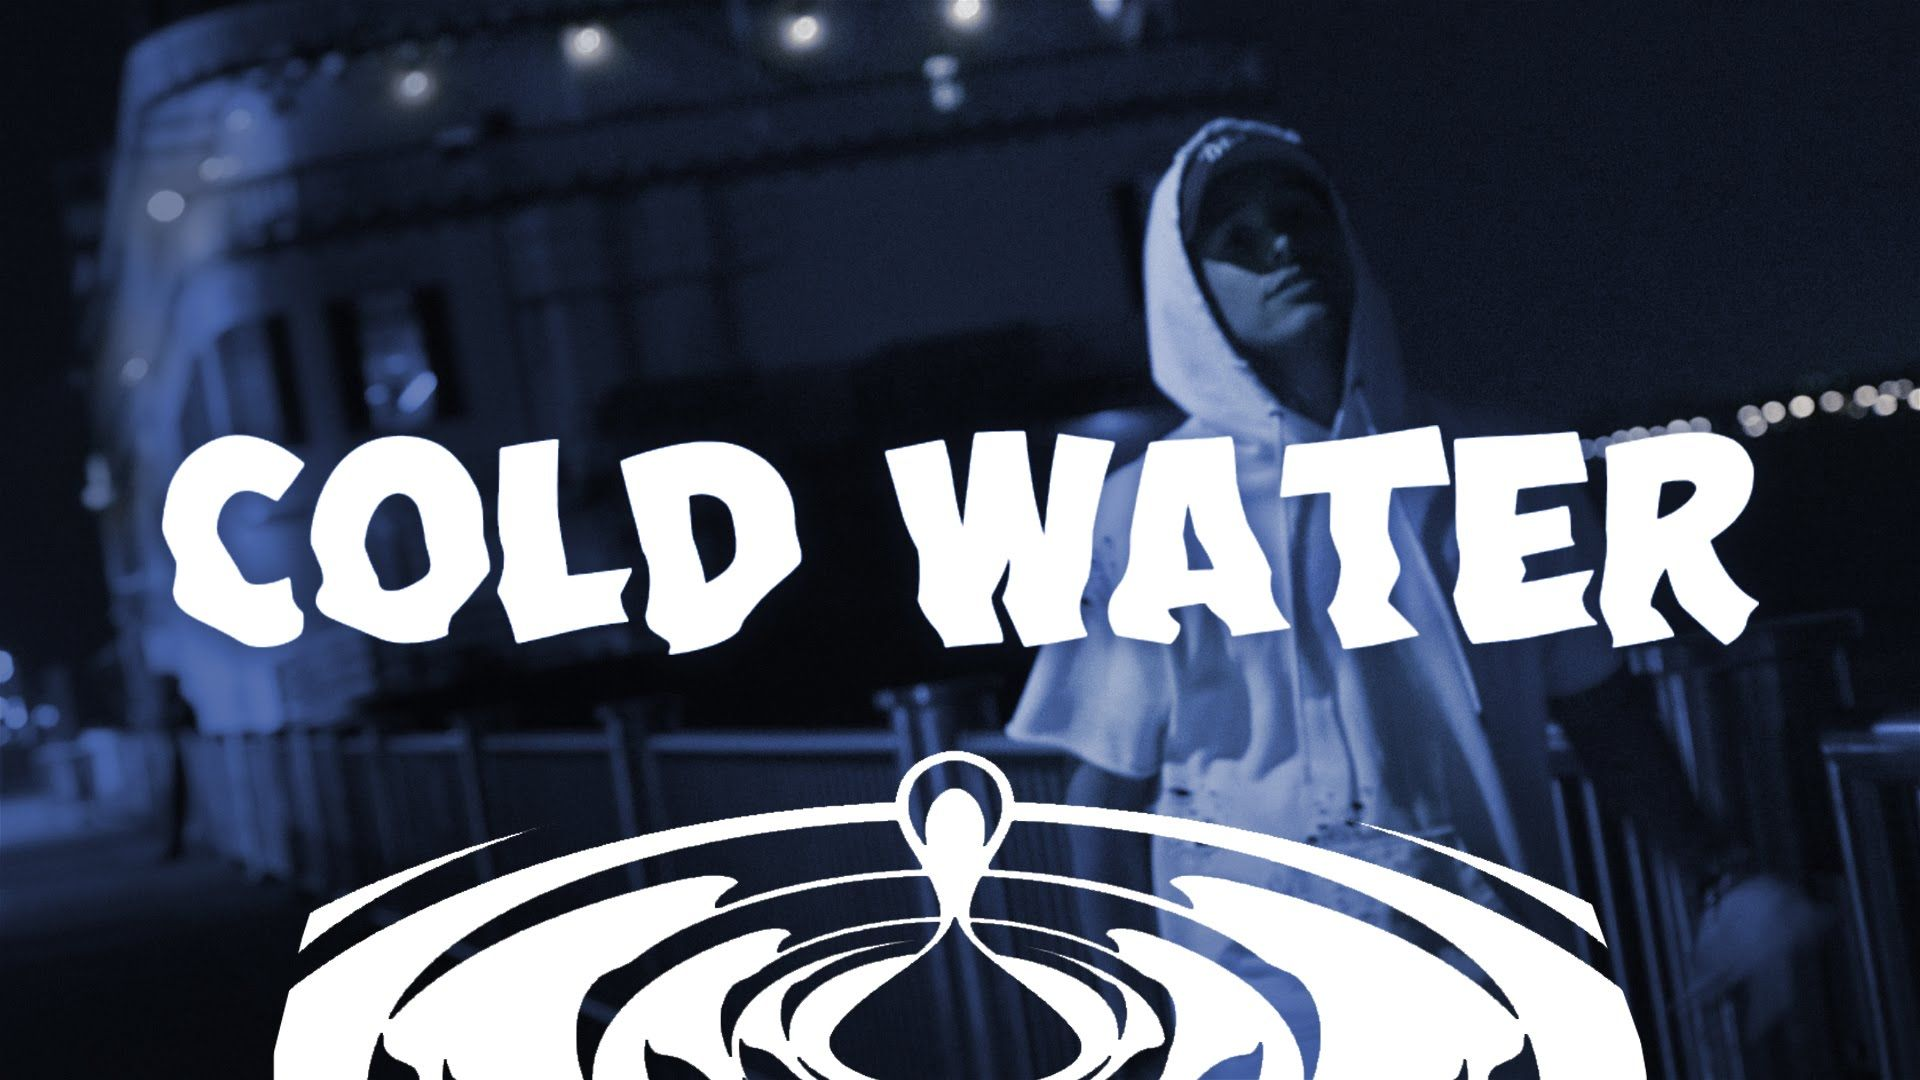 Cold Water - Major Lazer Ft. Justin Bieber (Official Music Video) | Remi...